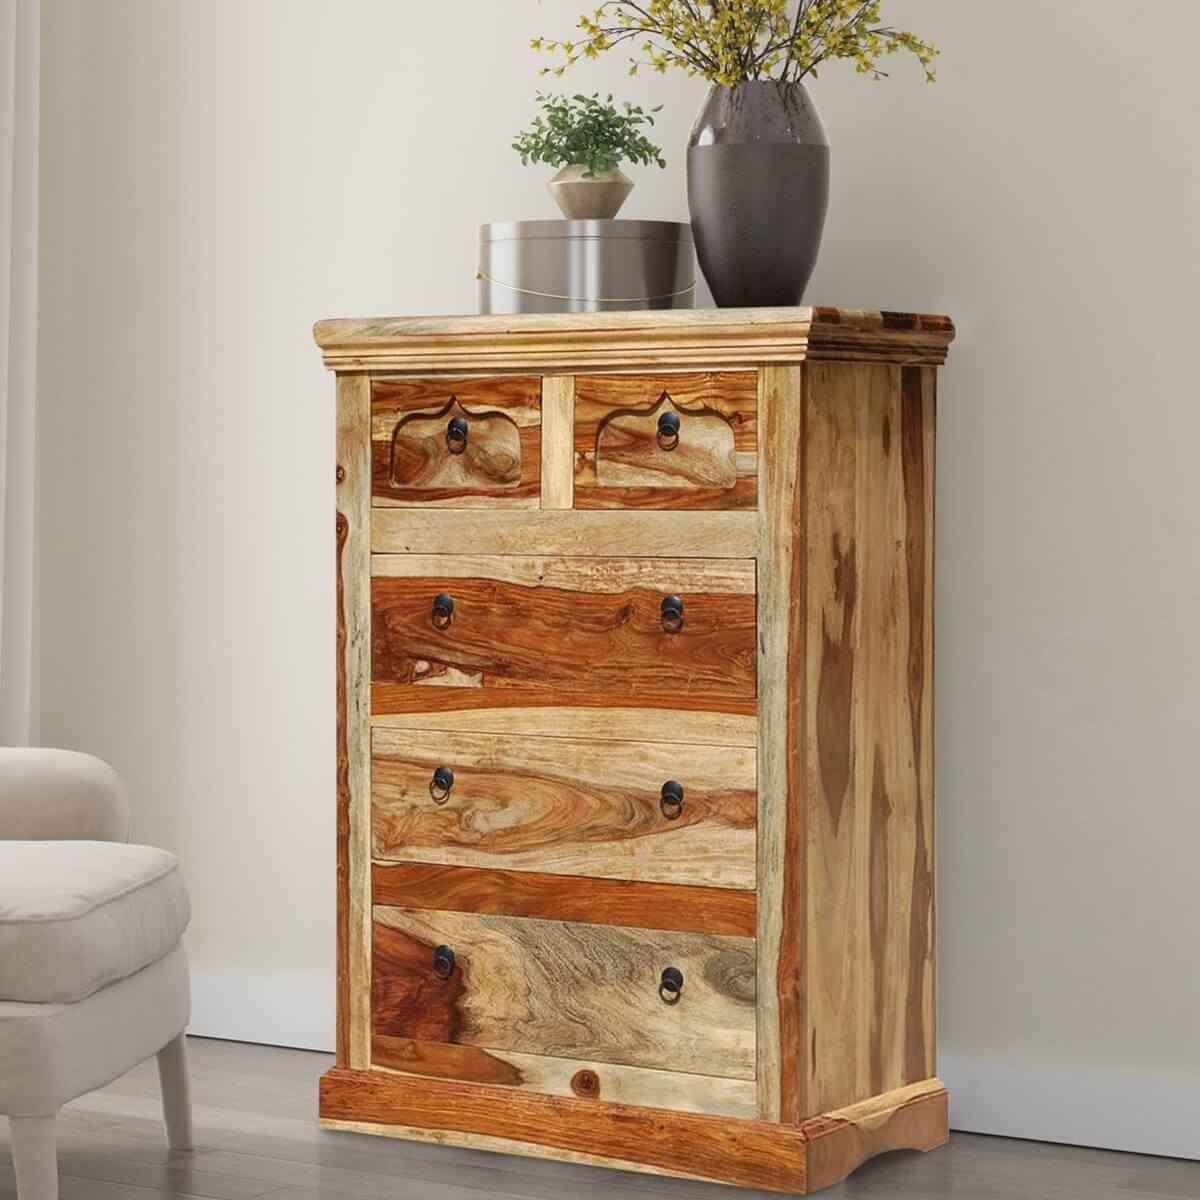 Wood Storage 5 Drawers Dresser Chest Bed Room Furniture